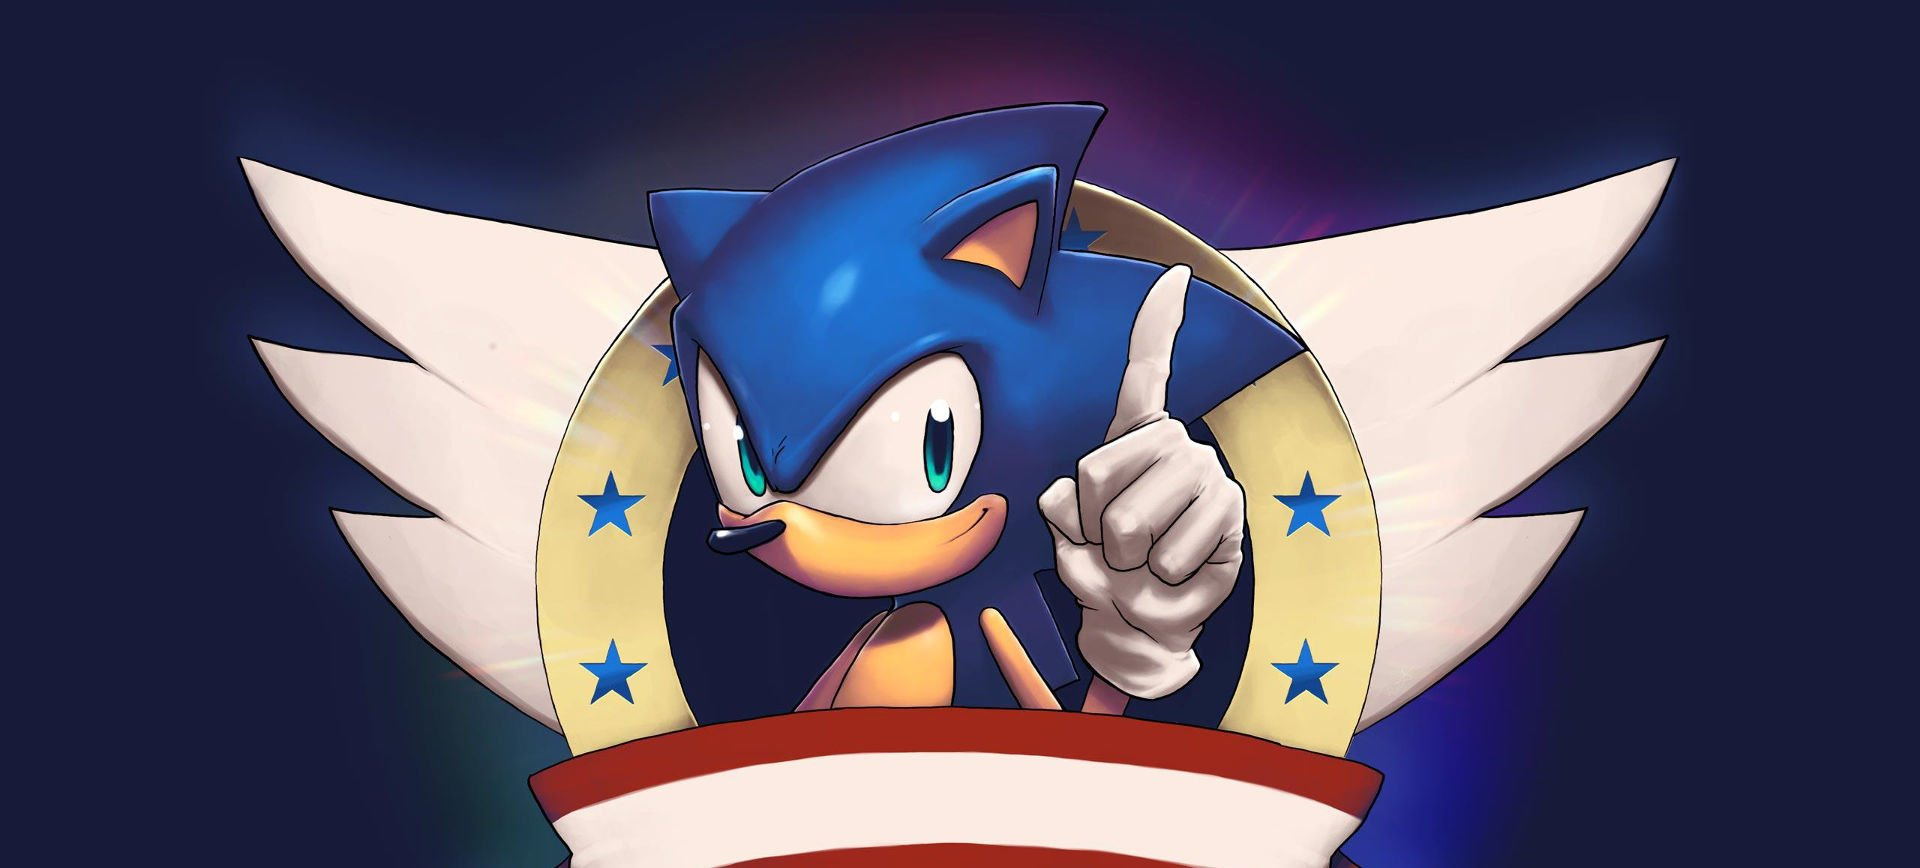 Free Games:  Sonic Dash, Angry Birds + more!